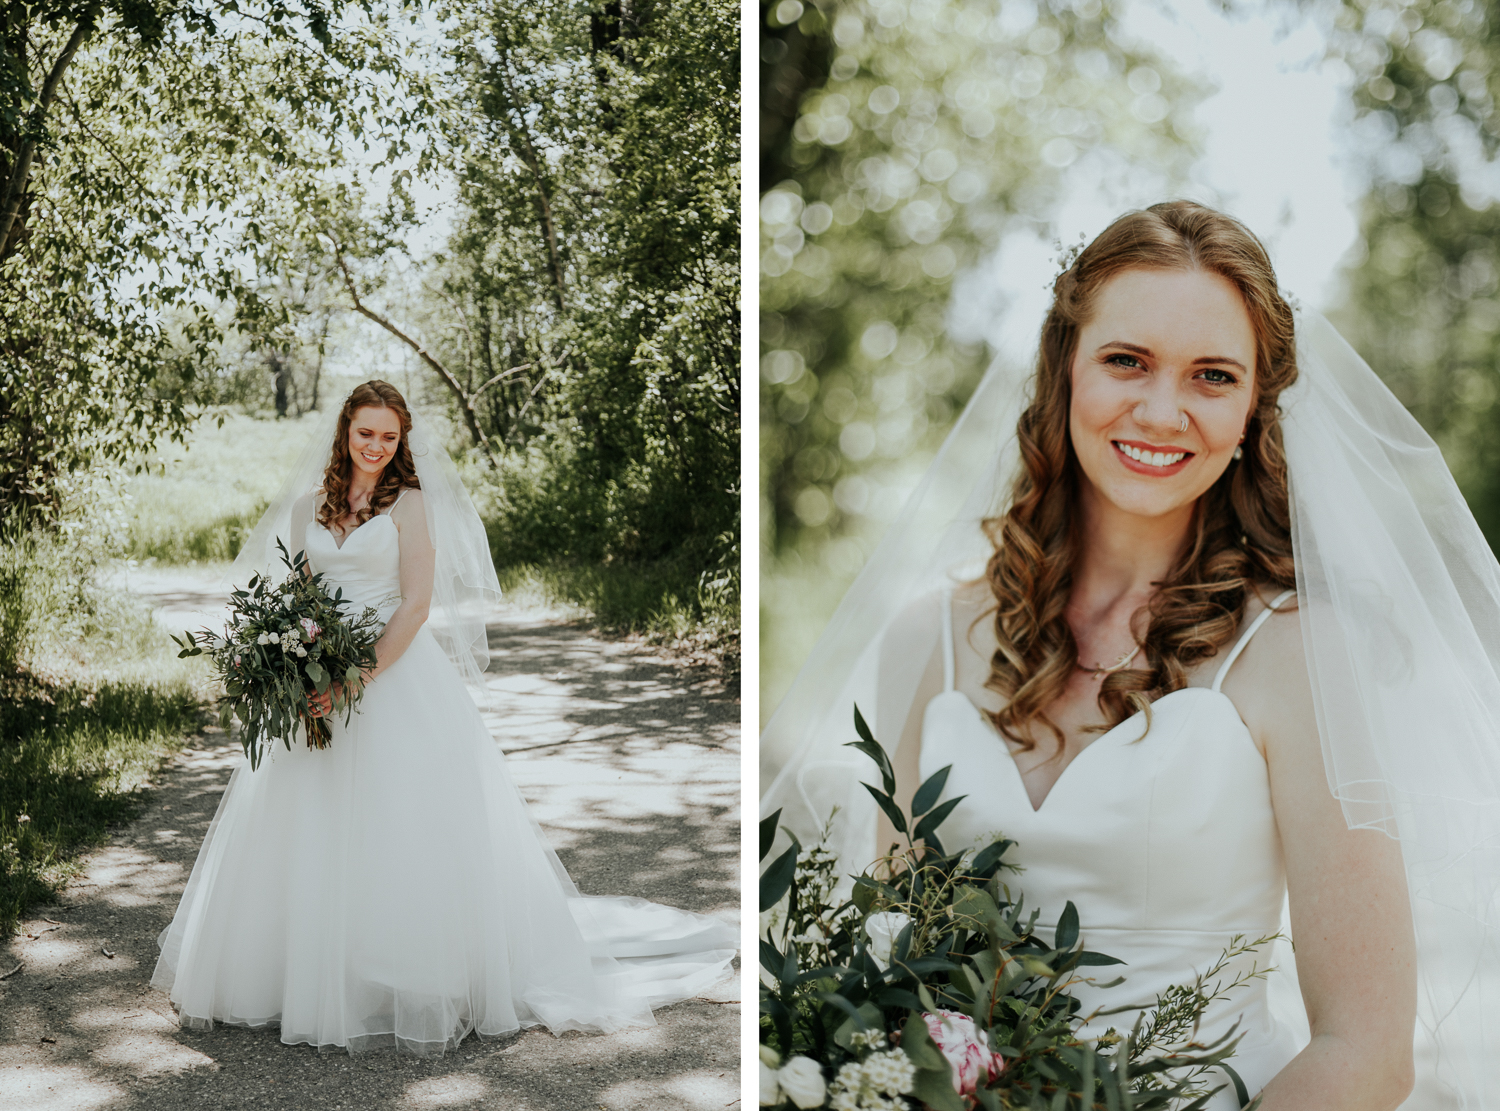 lethbridge-wedding-photographer-love-and-be-loved-photography-dan-tynnea-picture-image-photo-140.jpg